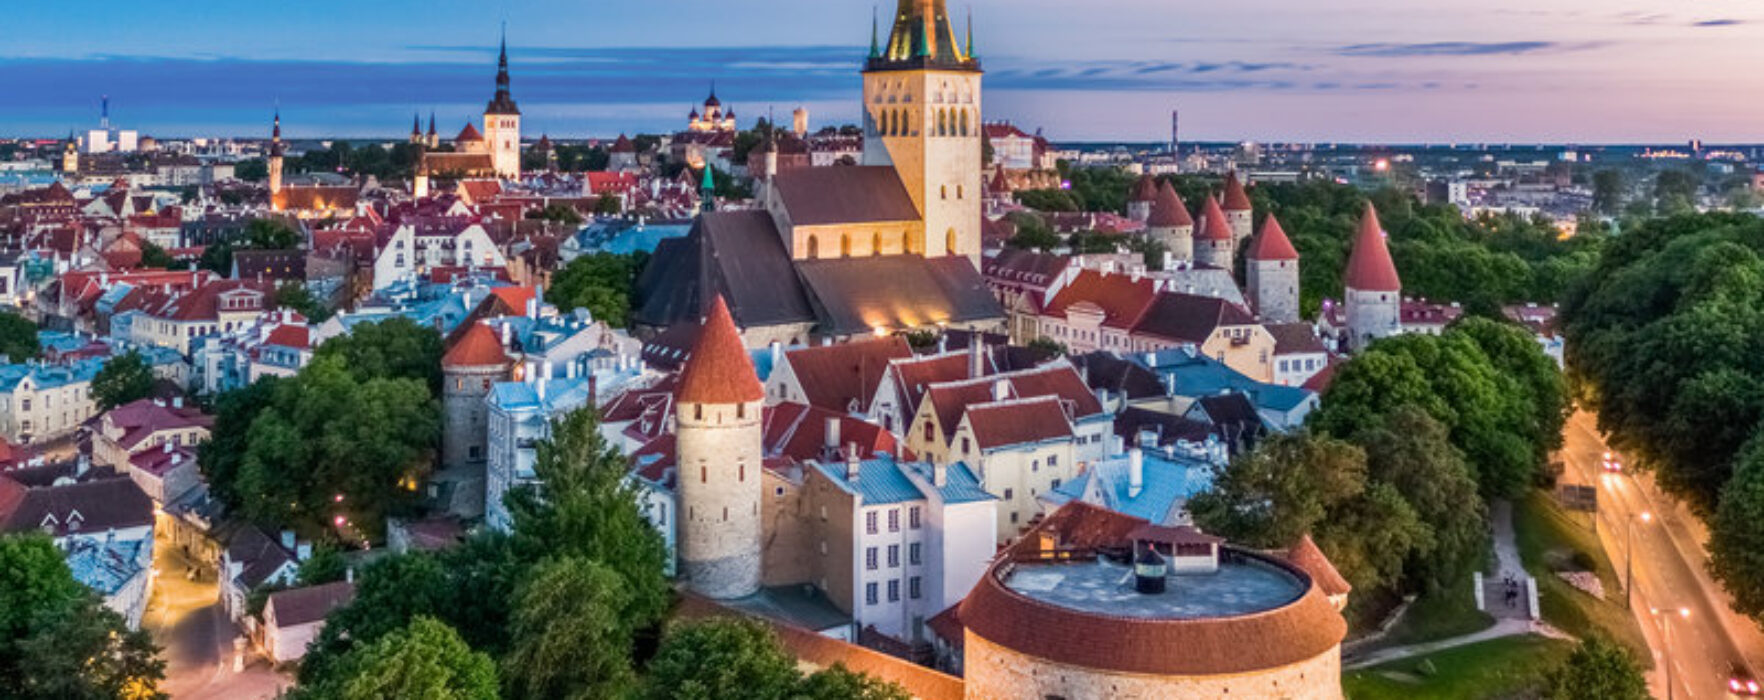 Fall for Estonia: Four weekend breaks to discover